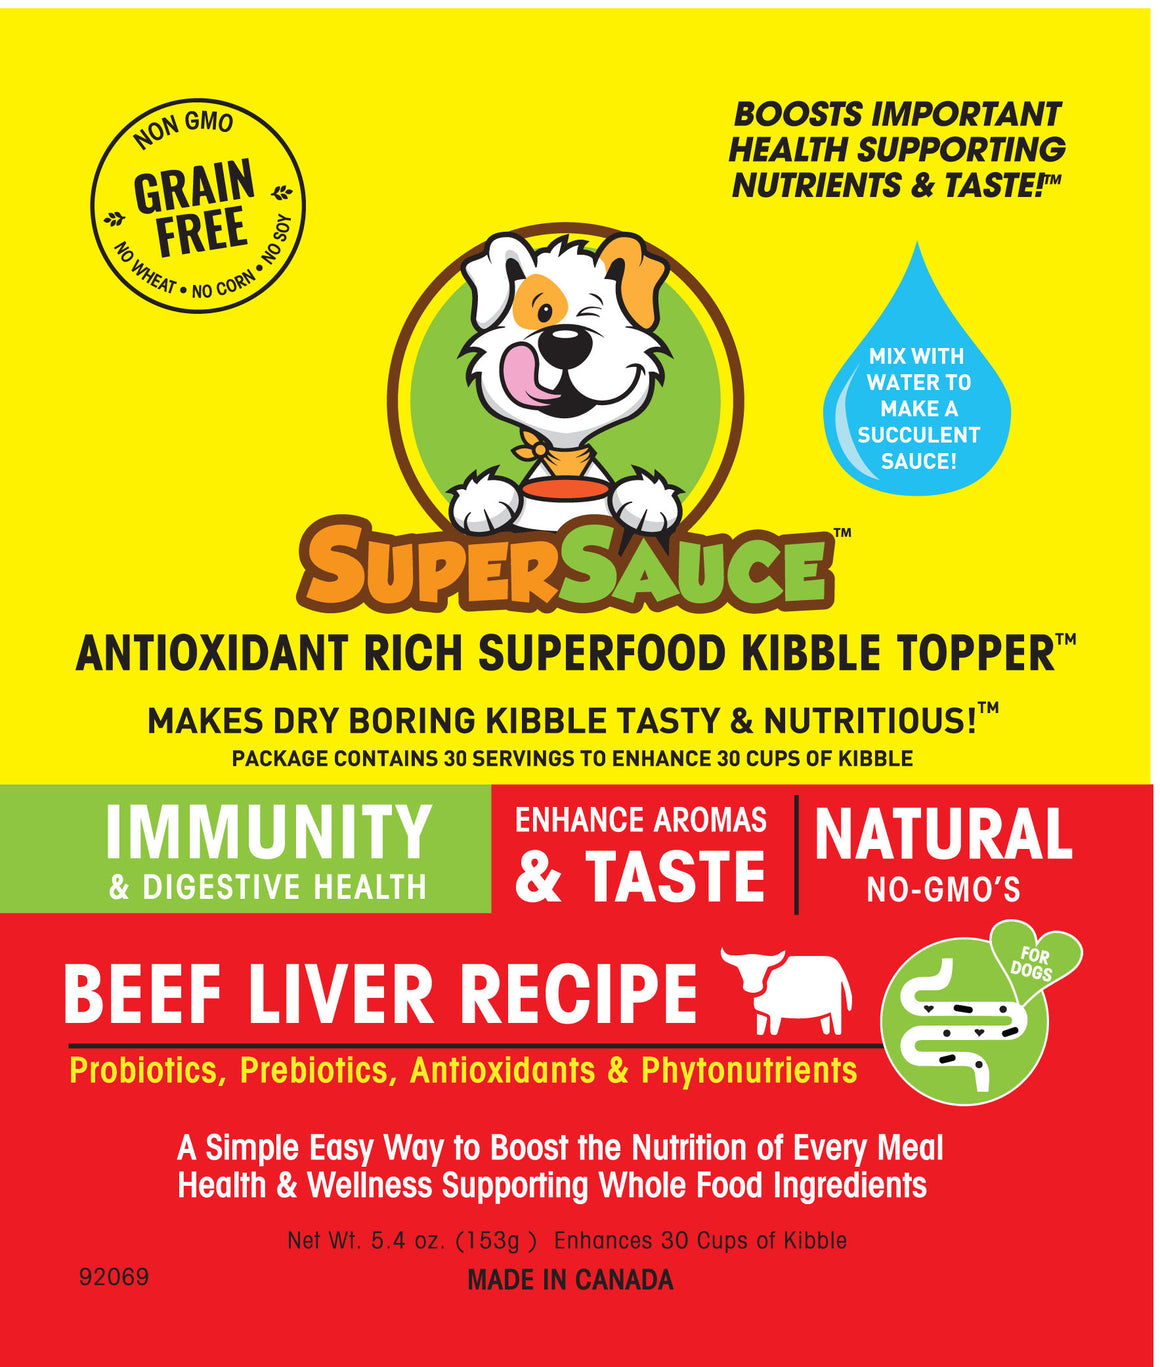 SUPERSAUCE™ Beef Liver + PROBIOTICS Digestive Health 5.4 oz. (153g) MADE IN CANADA				New Product - Please enter name here